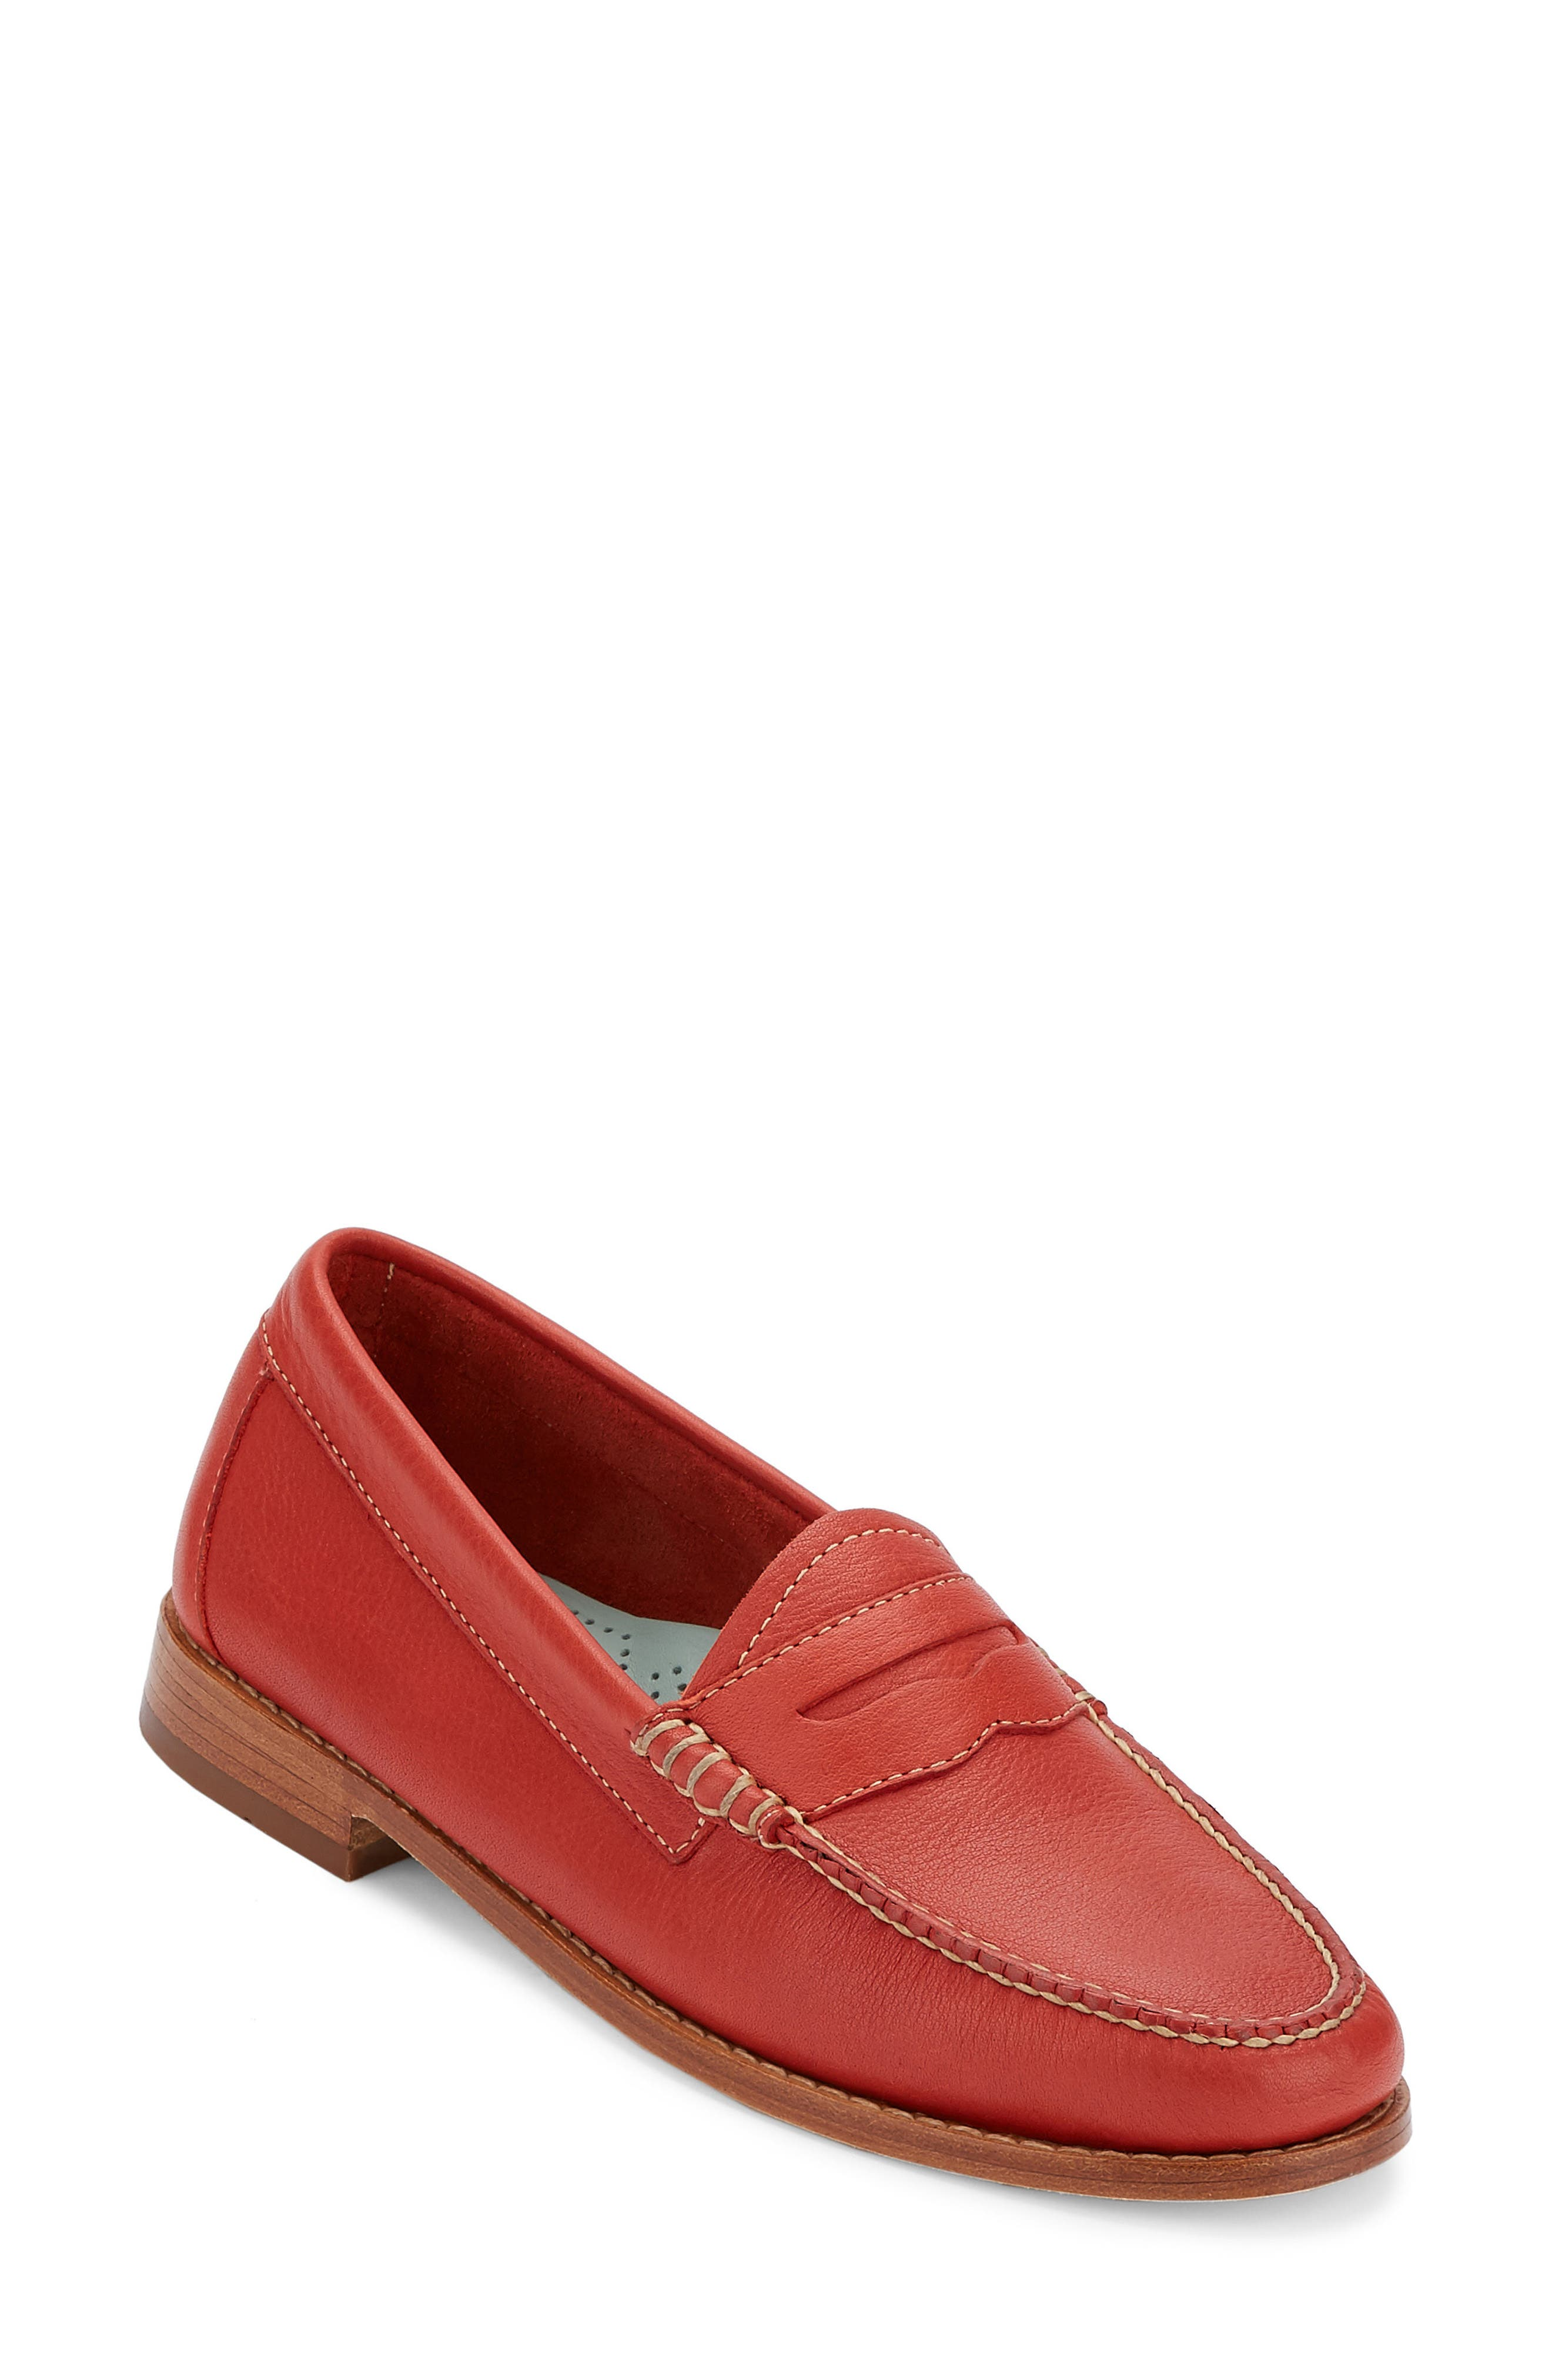 'Whitney' Loafer,                             Main thumbnail 47, color,